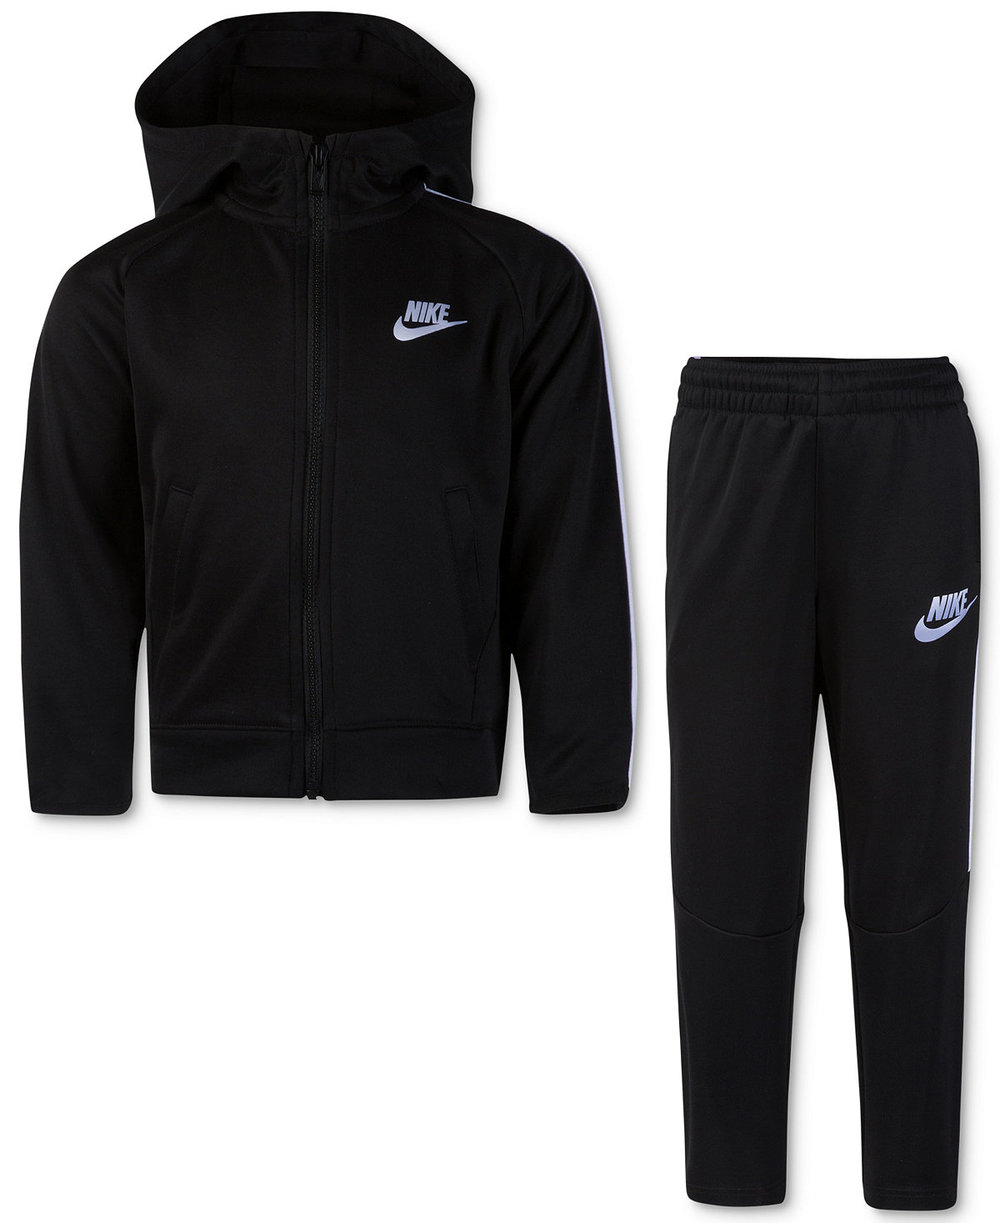 $88 - Nike Season 2 Fleece Tracksuit